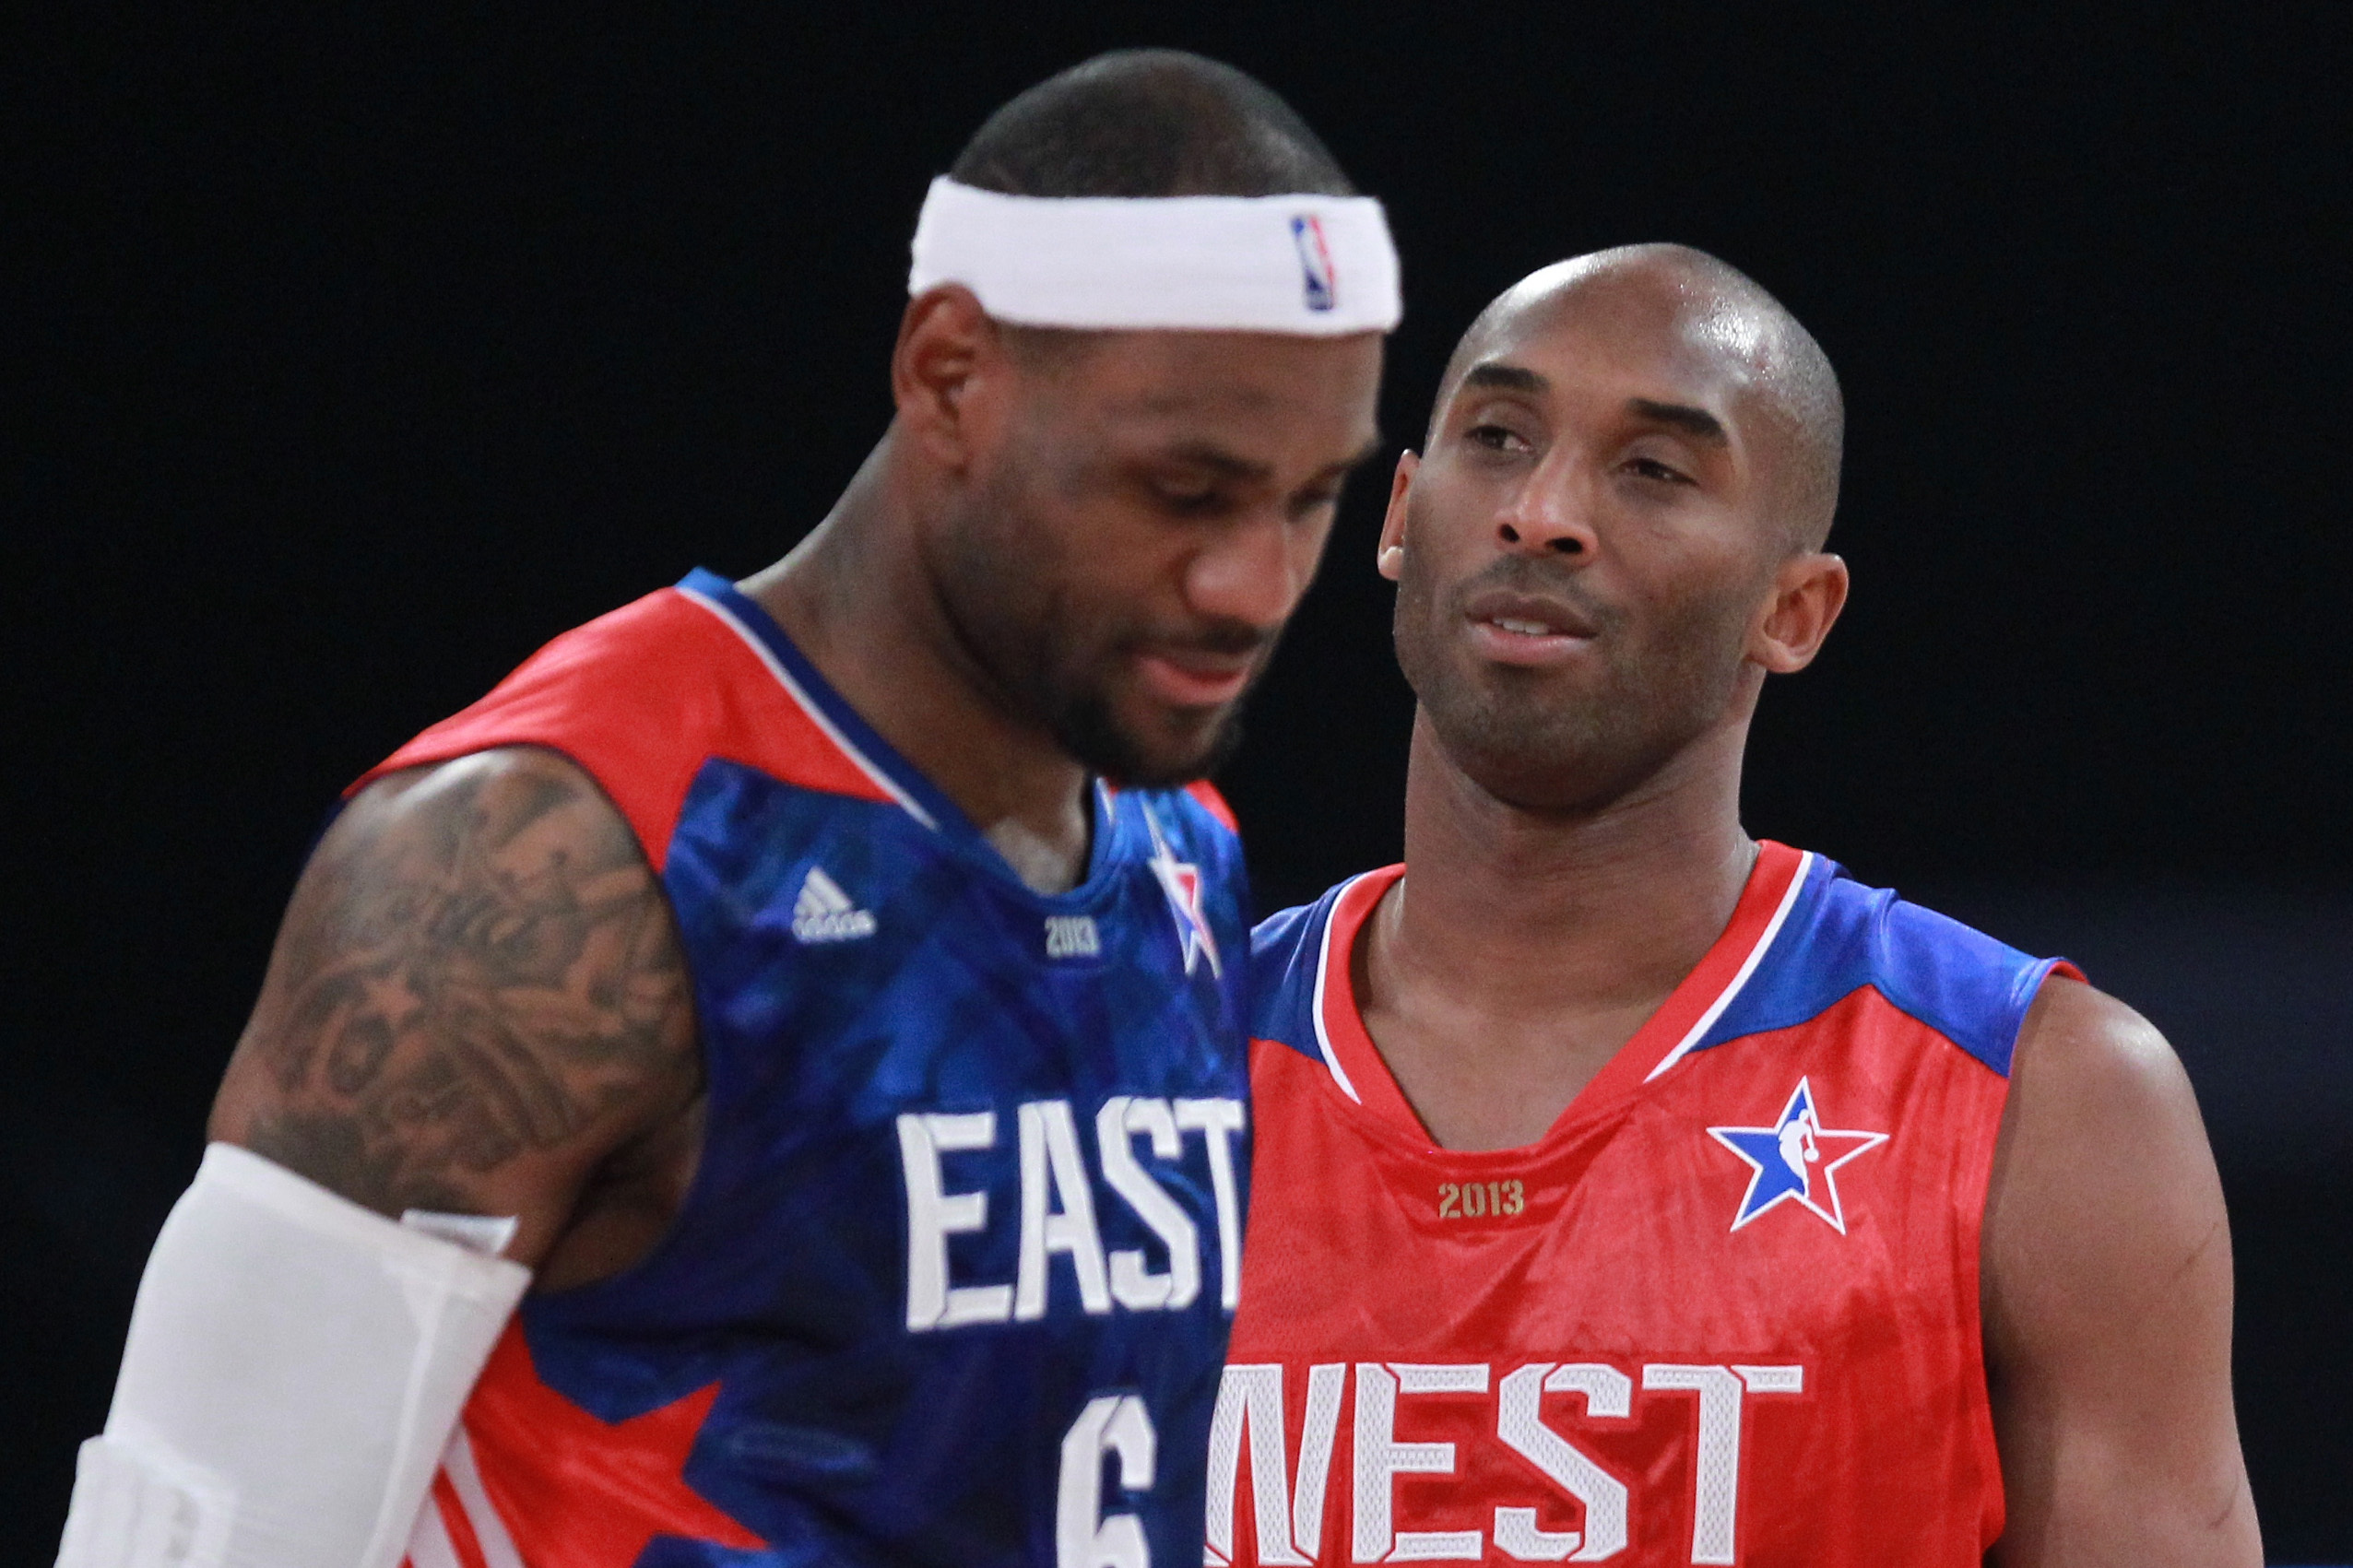 7660047a76d NBA All-Star Game  Kobe Bryant gets bets of LeBron James as West beats East  143-138